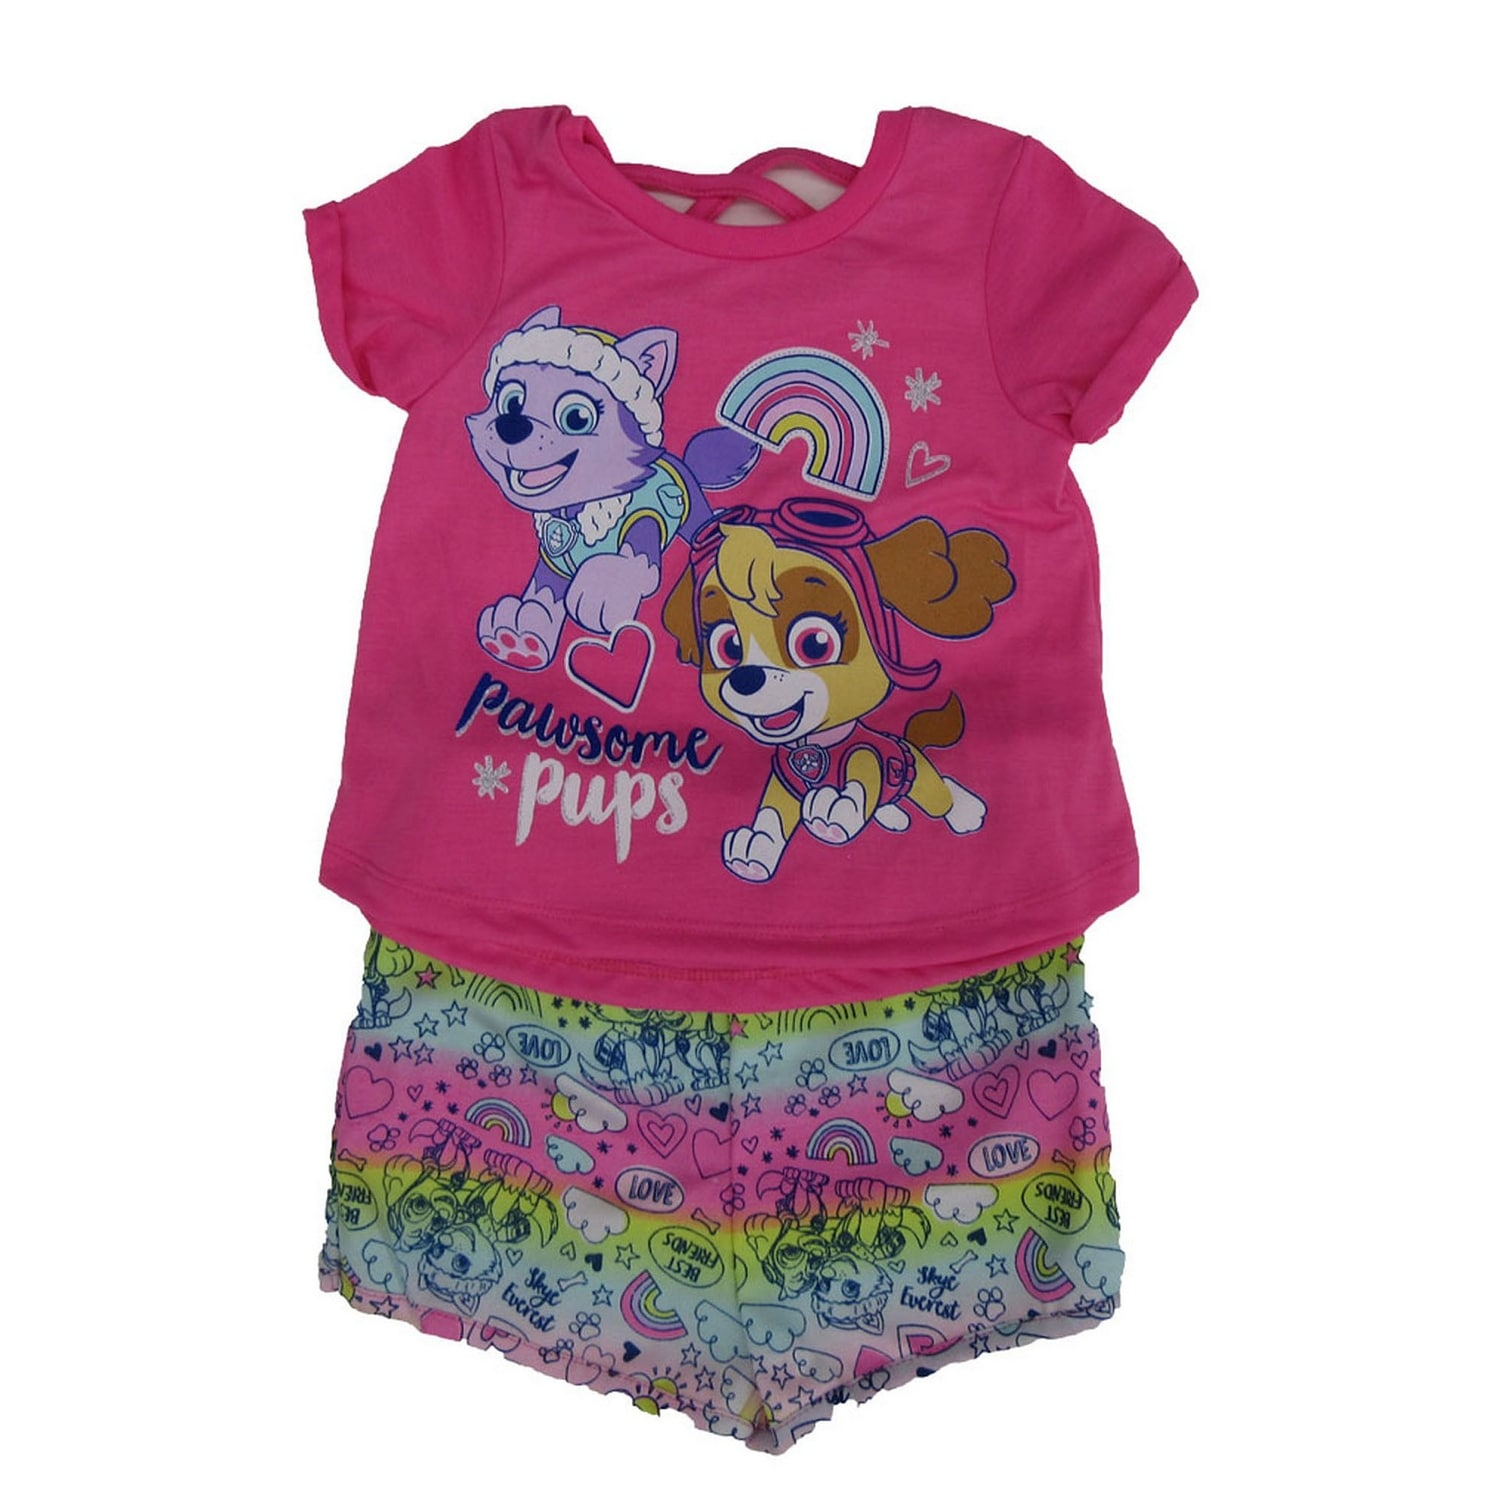 8602b70178951 Shop Nickelodeon Little Girls Pink Paw Patrol Print T-Shirt 2 Pc Shorts  Outfit - Free Shipping On Orders Over $45 - Overstock - 27212090